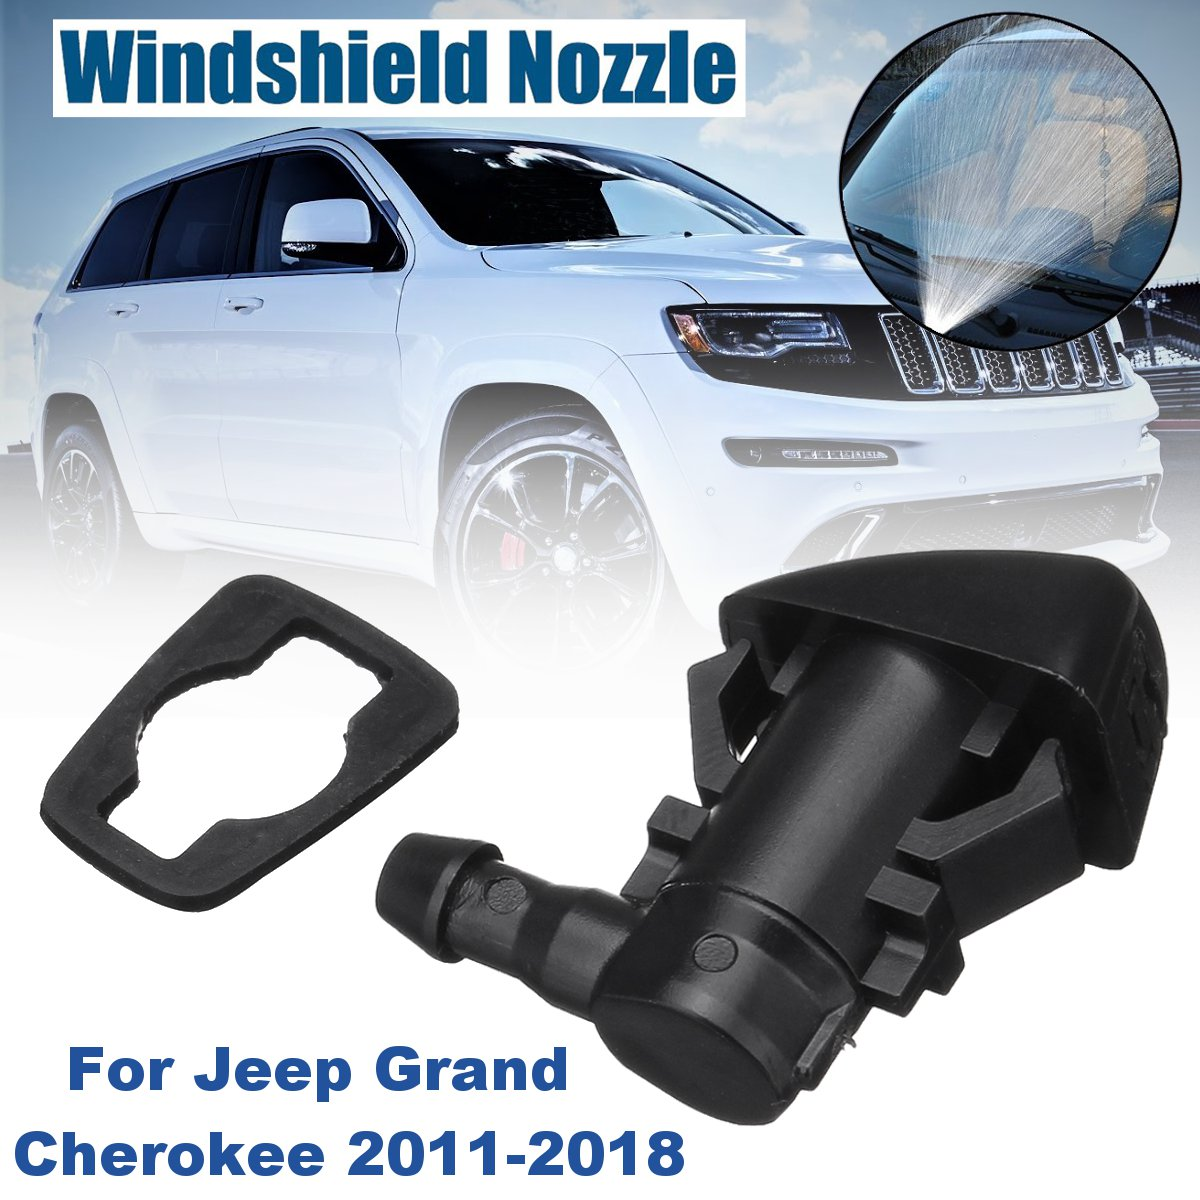 68260443AA 55372143AB Windshied Wiper Washer Spray Nozzle Replacement For Jeep Grand Cherokee 2011 2012 2013 2014 2015 2016 2018 image